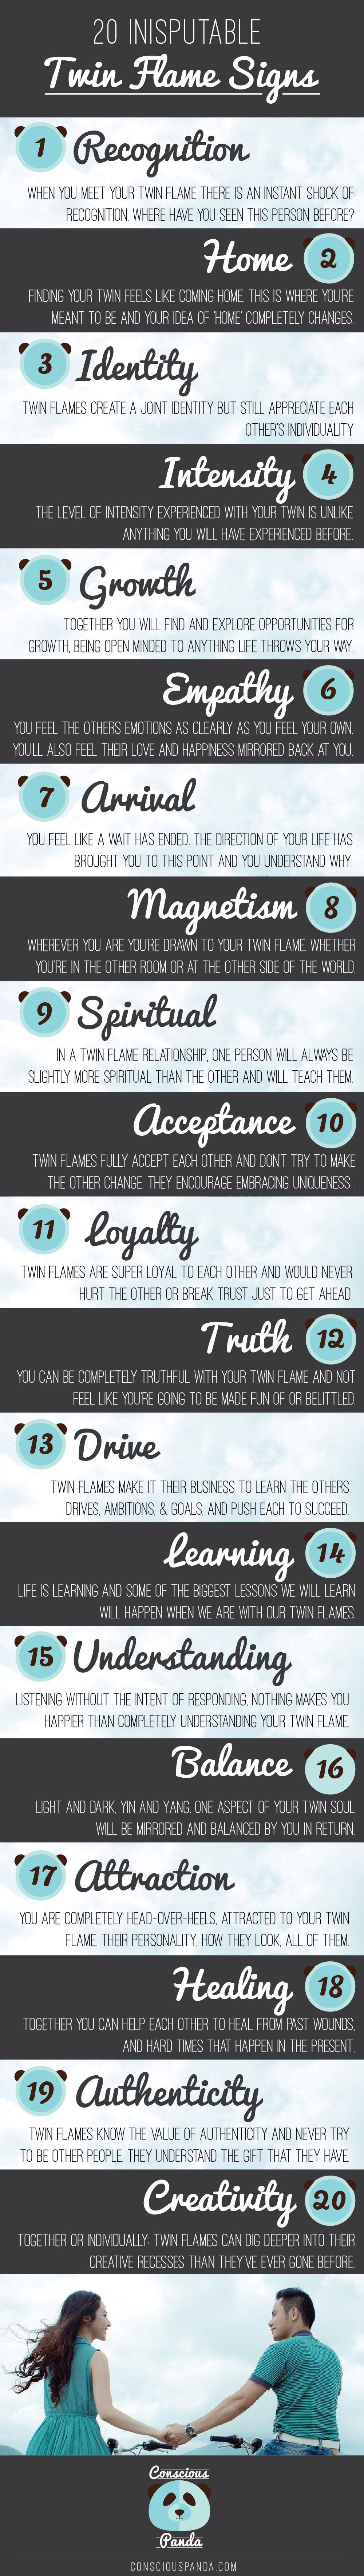 """20 Indisputable Twin Flame Signs - """"1) Recognition. 2) Home. 3) Identity. 4) Intensity. 5) Growth. 6) Empathy. 7) Arrival. 8) Magnetism. 9) Spiritual. 10) Acceptance. 11) Loyalty. 12) Truth. 13) Drive. 14) Learning. 15) Understanding. 16) Balance. 17) Attraction. 18) Healing. 19) Authenticity. 20) Creativity."""""""